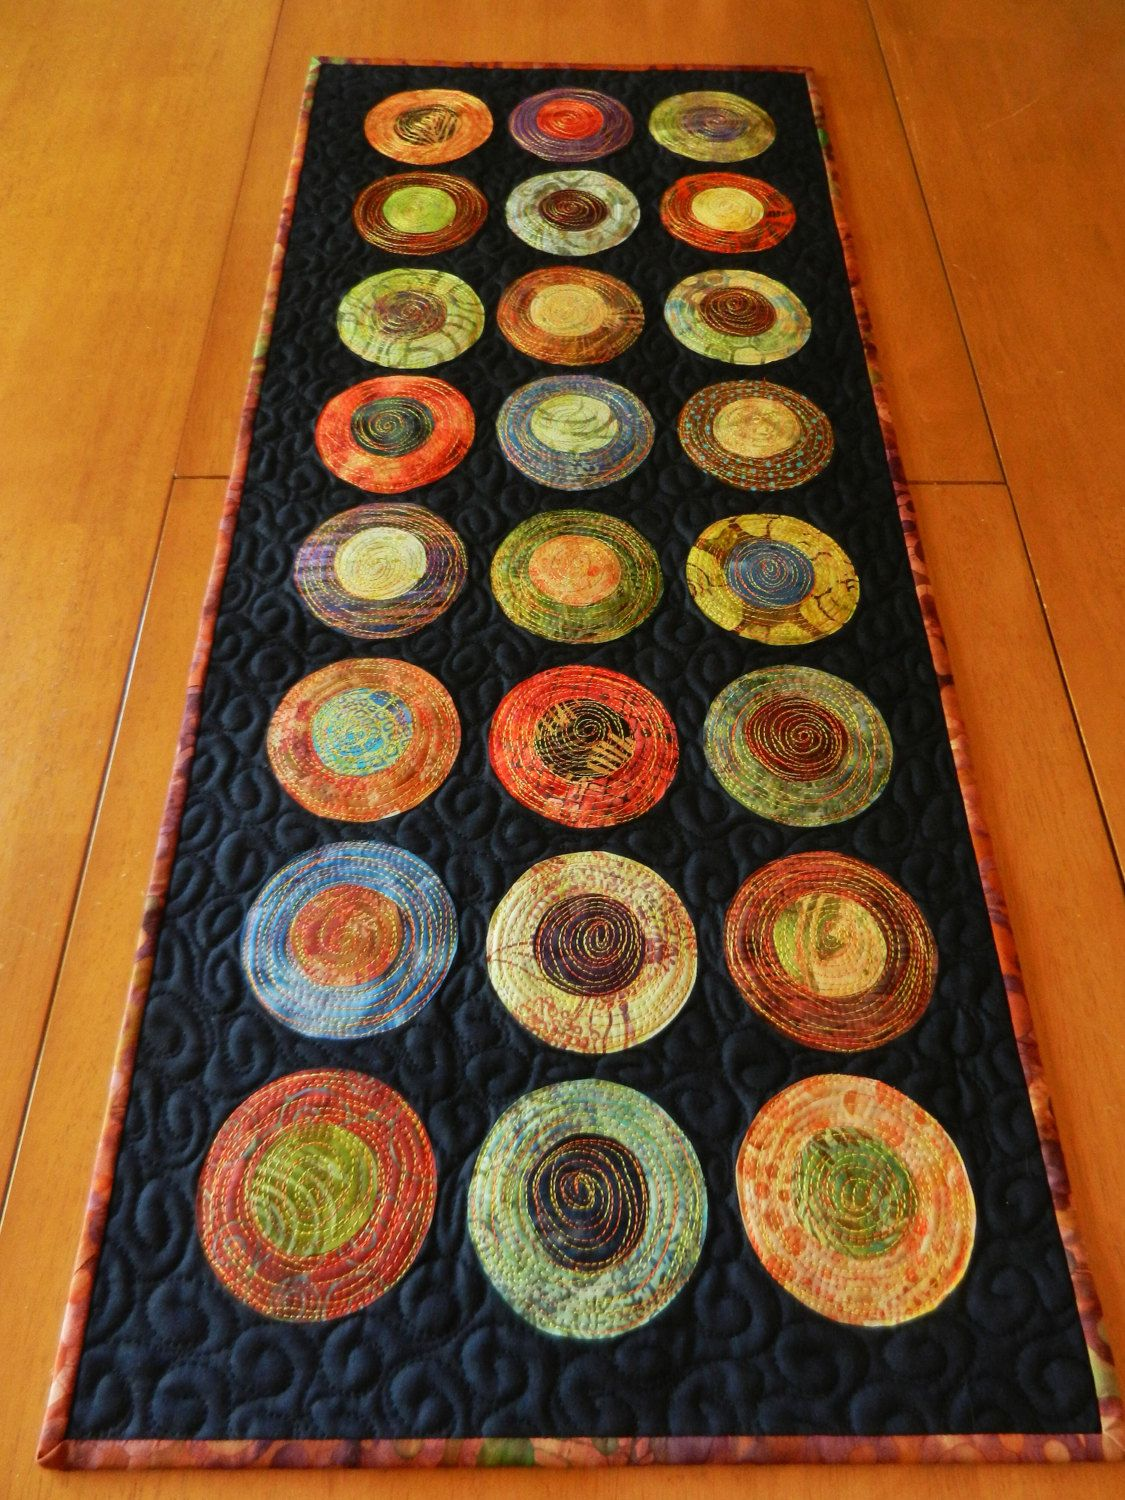 Modern Table Runner Batik Circle Table Runner Quilted Table Runner Art For Your Table Also Makes A Great Wall Hanging Made To Order Modern Table Runners Table Runners Circle Table